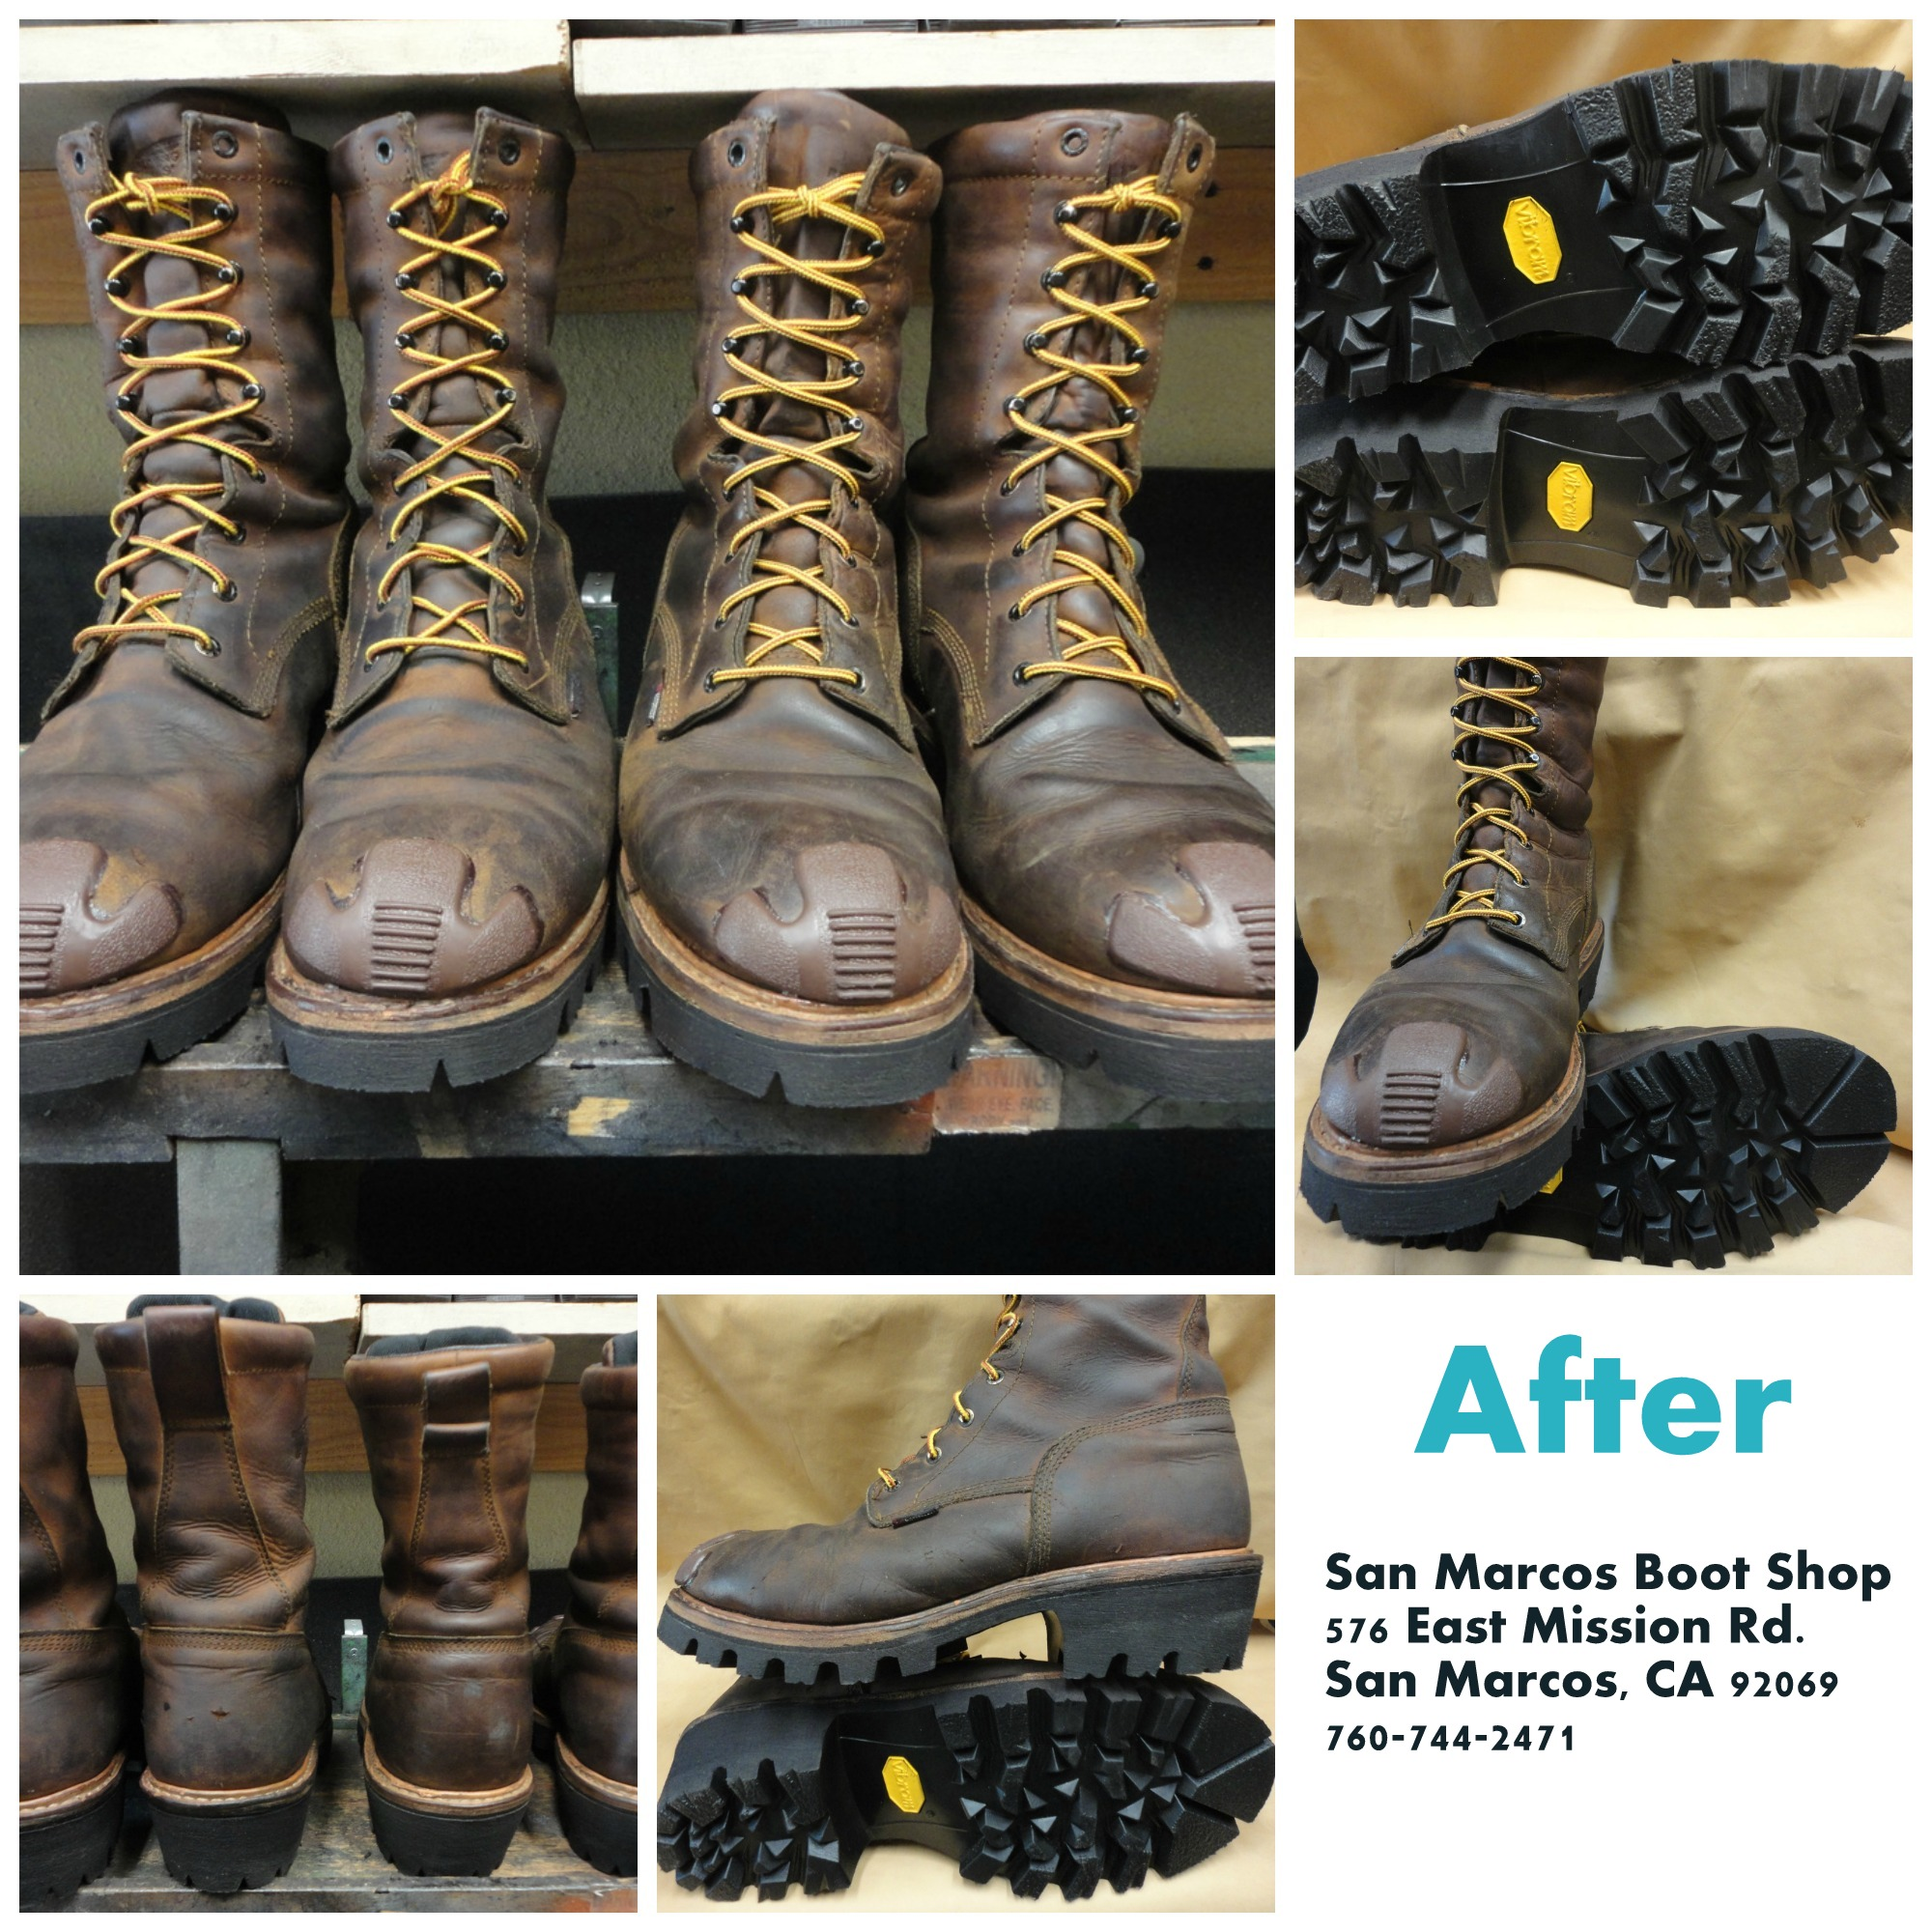 Logger boots after.jpg